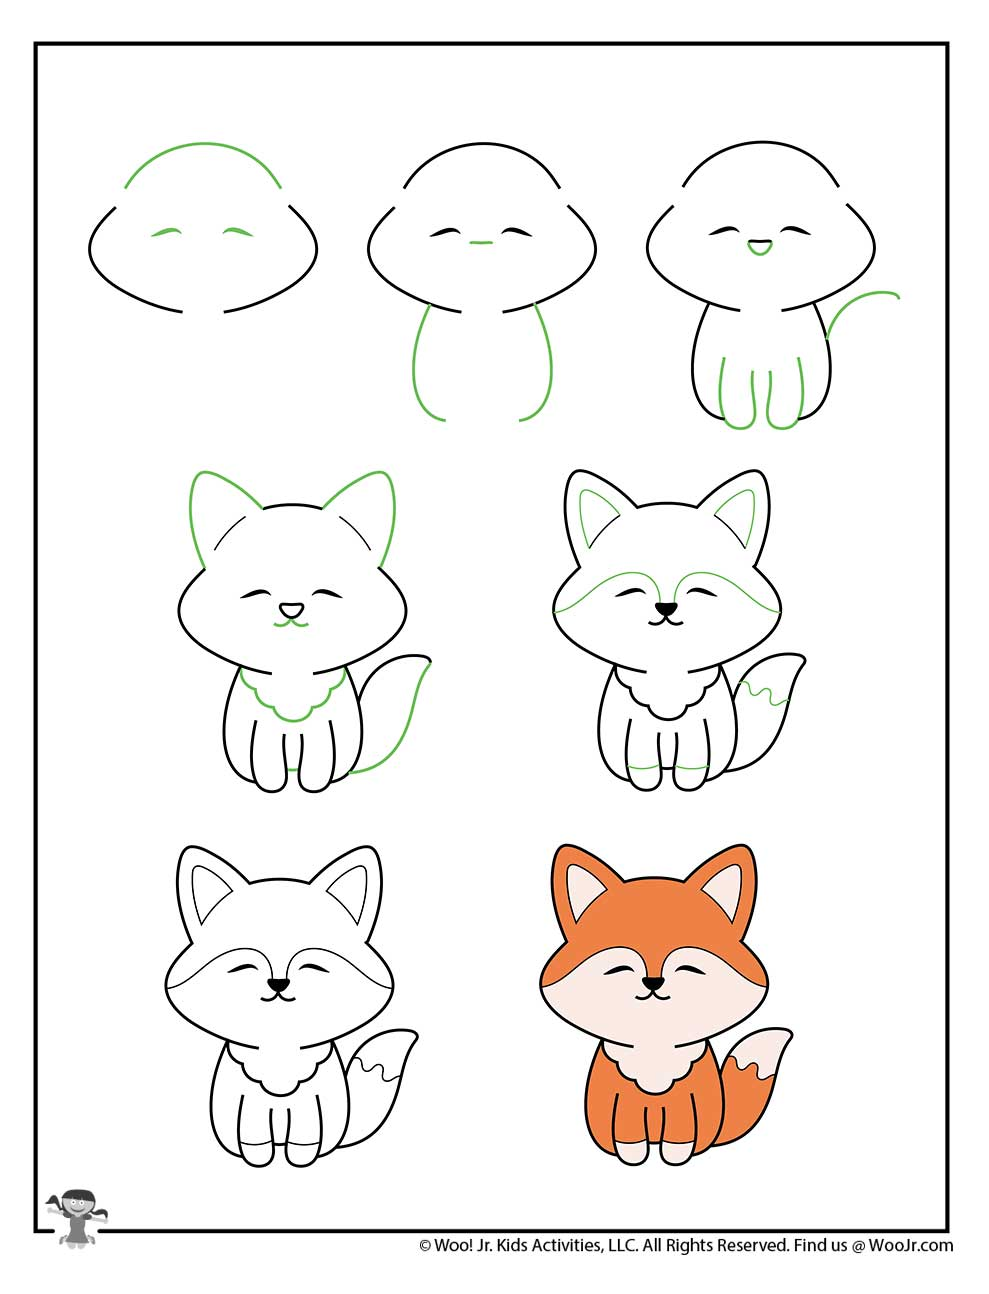 Cute Animal Pictures To Draw : animal, pictures, Animals, Activities